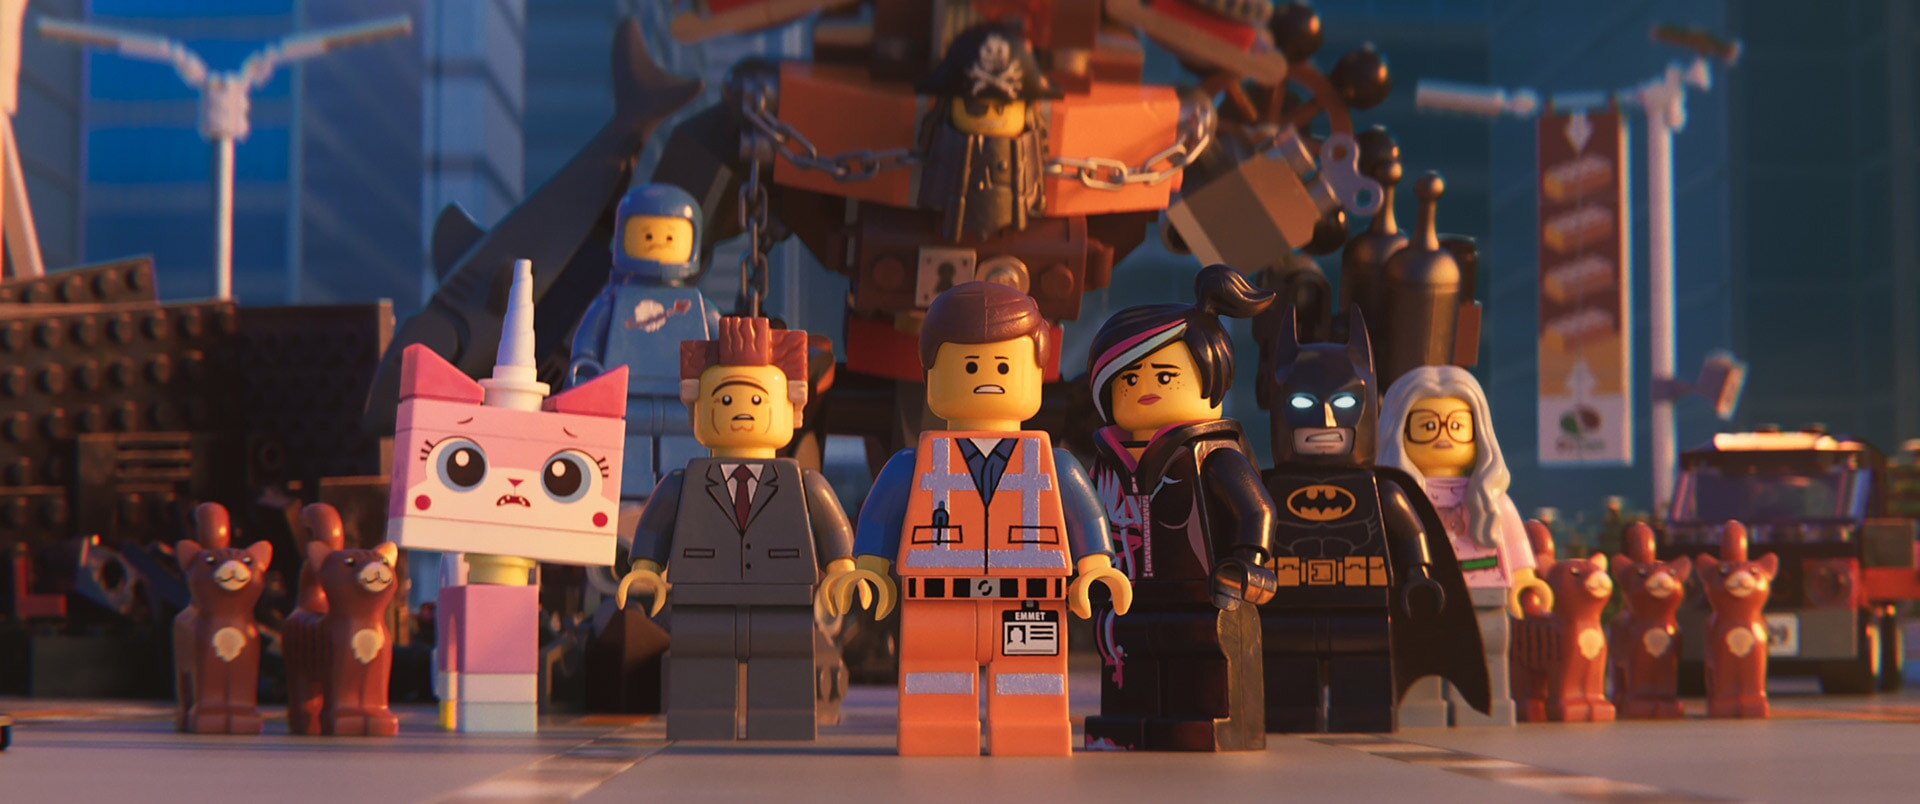 (L-R) Unikitty (ALISON BRIE), Benny (CHARLIE DAY), President Business (WILL FERRELL), MetalBeard (NICK OFFERMAN), Emmet (CHRIS PRATT), Lucy/Wyldstyle (ELIZABETH BANKS) and Batman (WILL ARNETT)